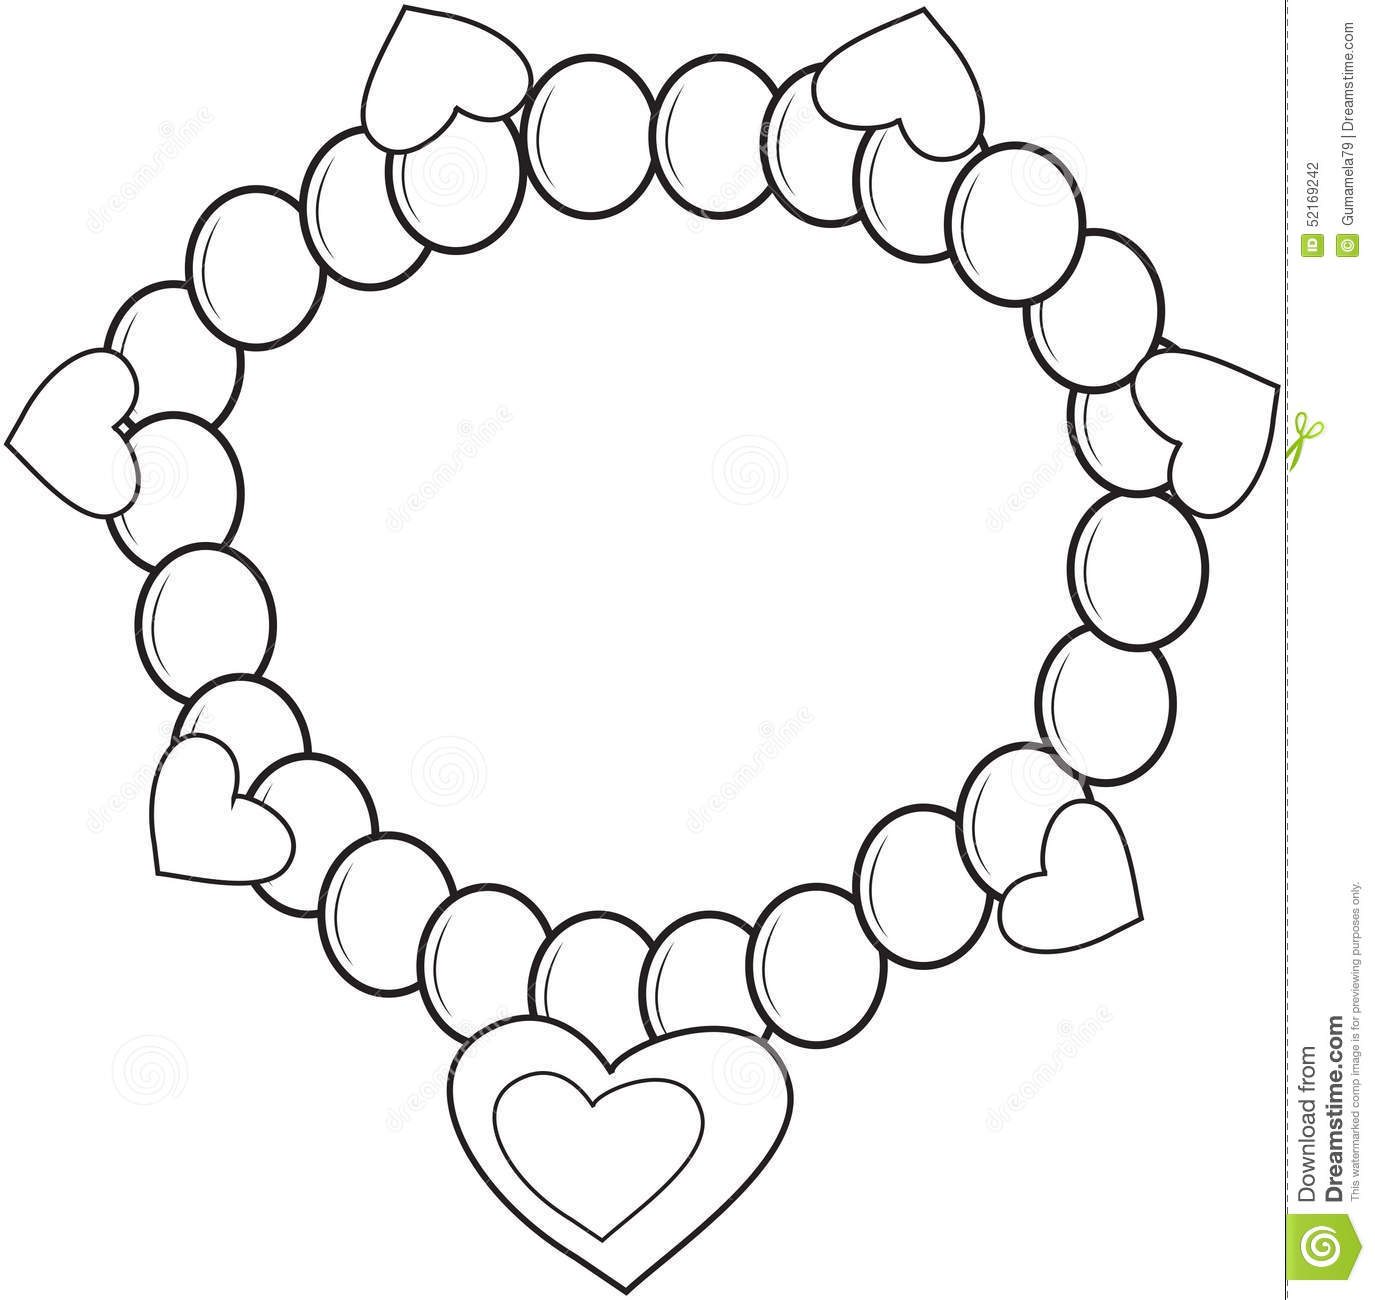 Bracelet coloring page stock illustration. Illustration of detail ...